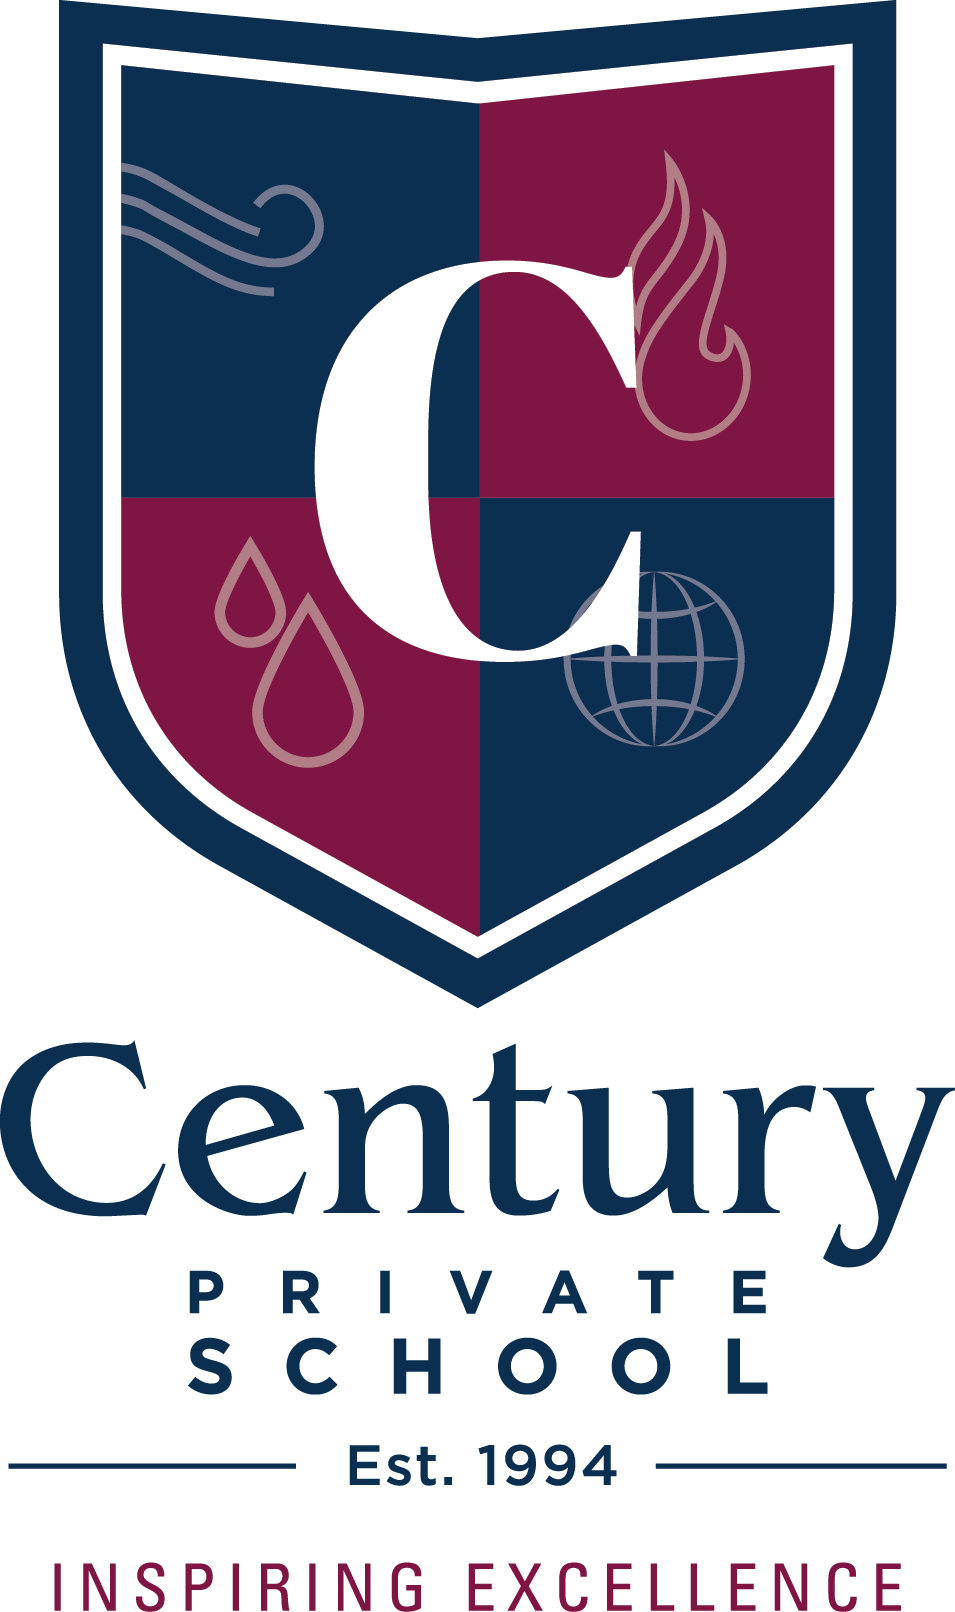 Century Private School